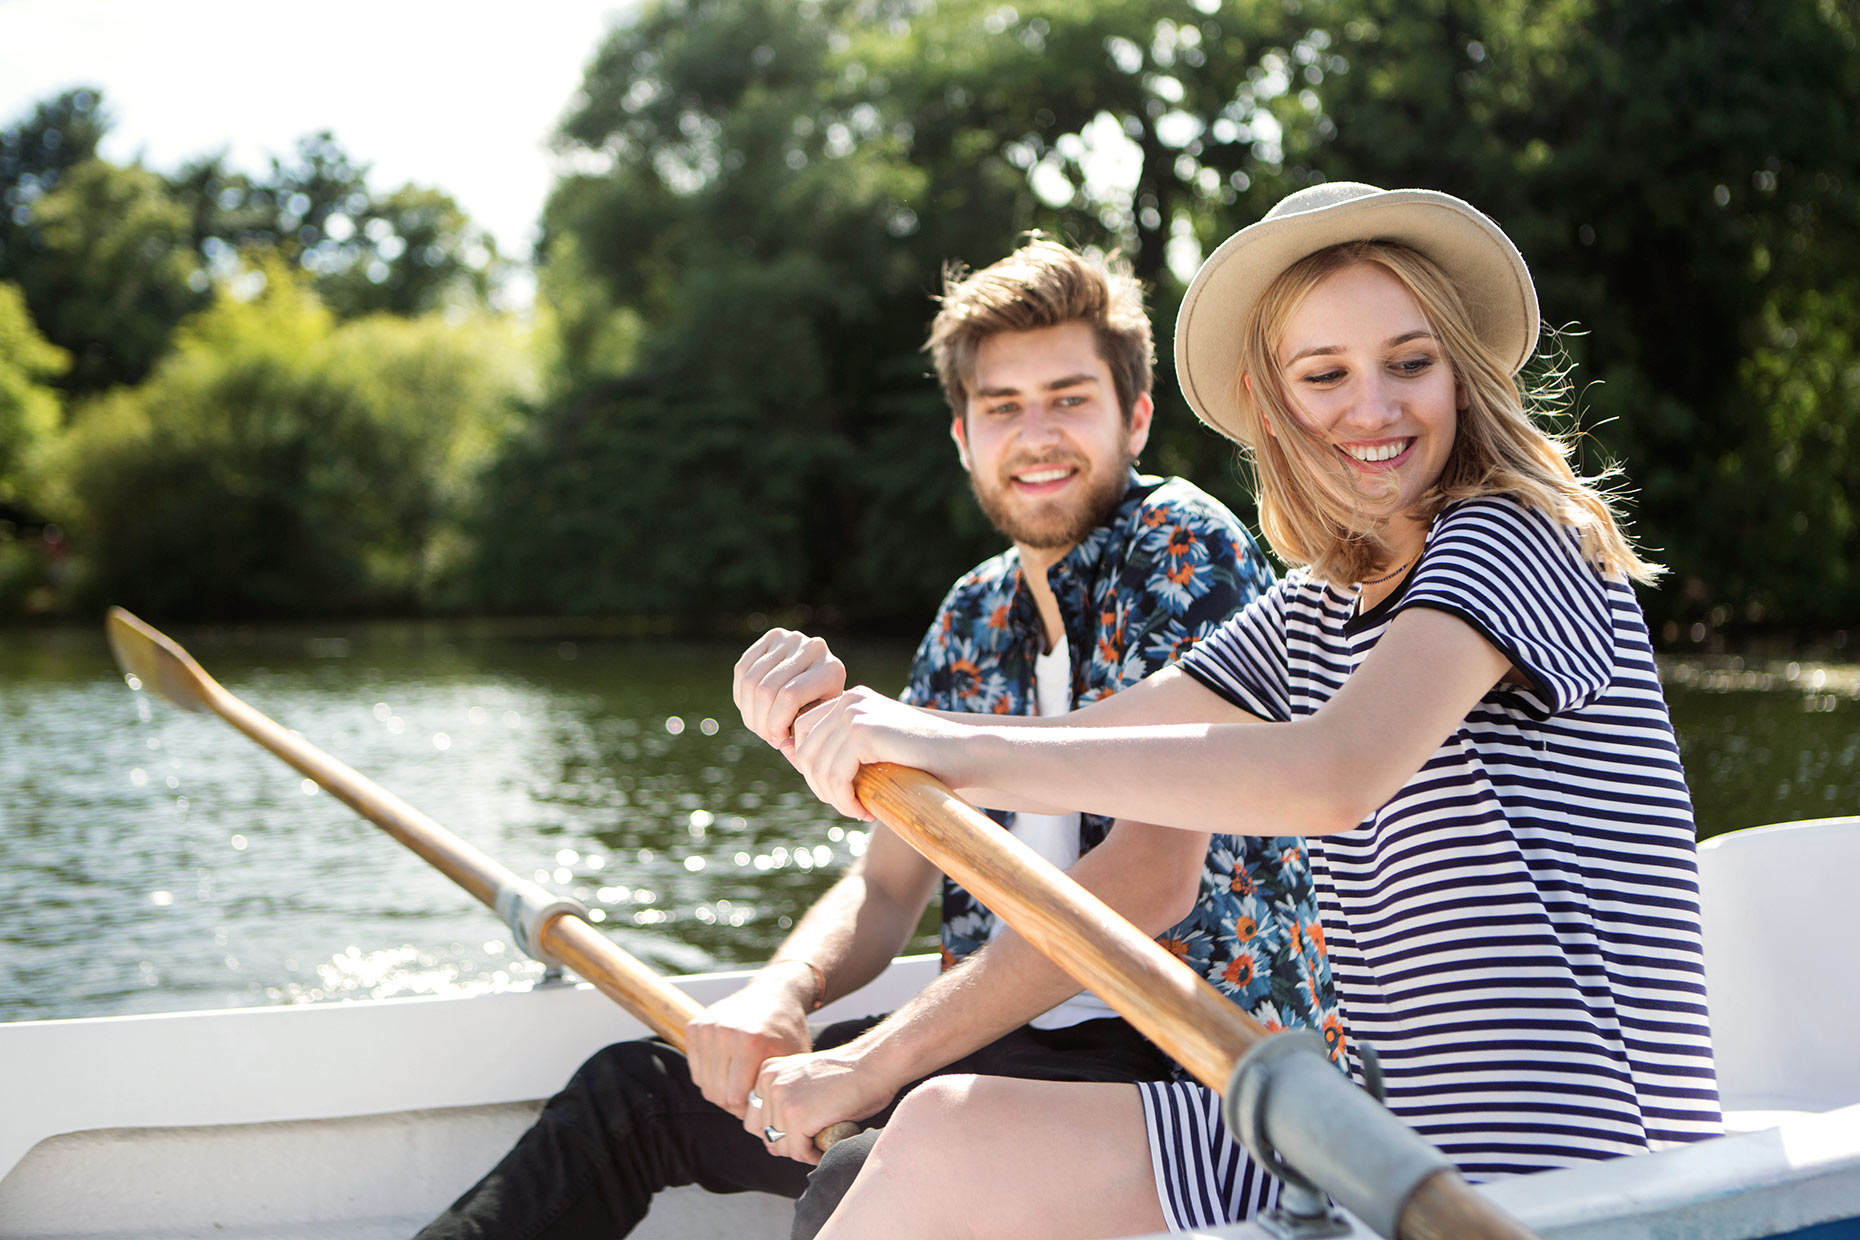 guy-and-girl-rowing-on-lake